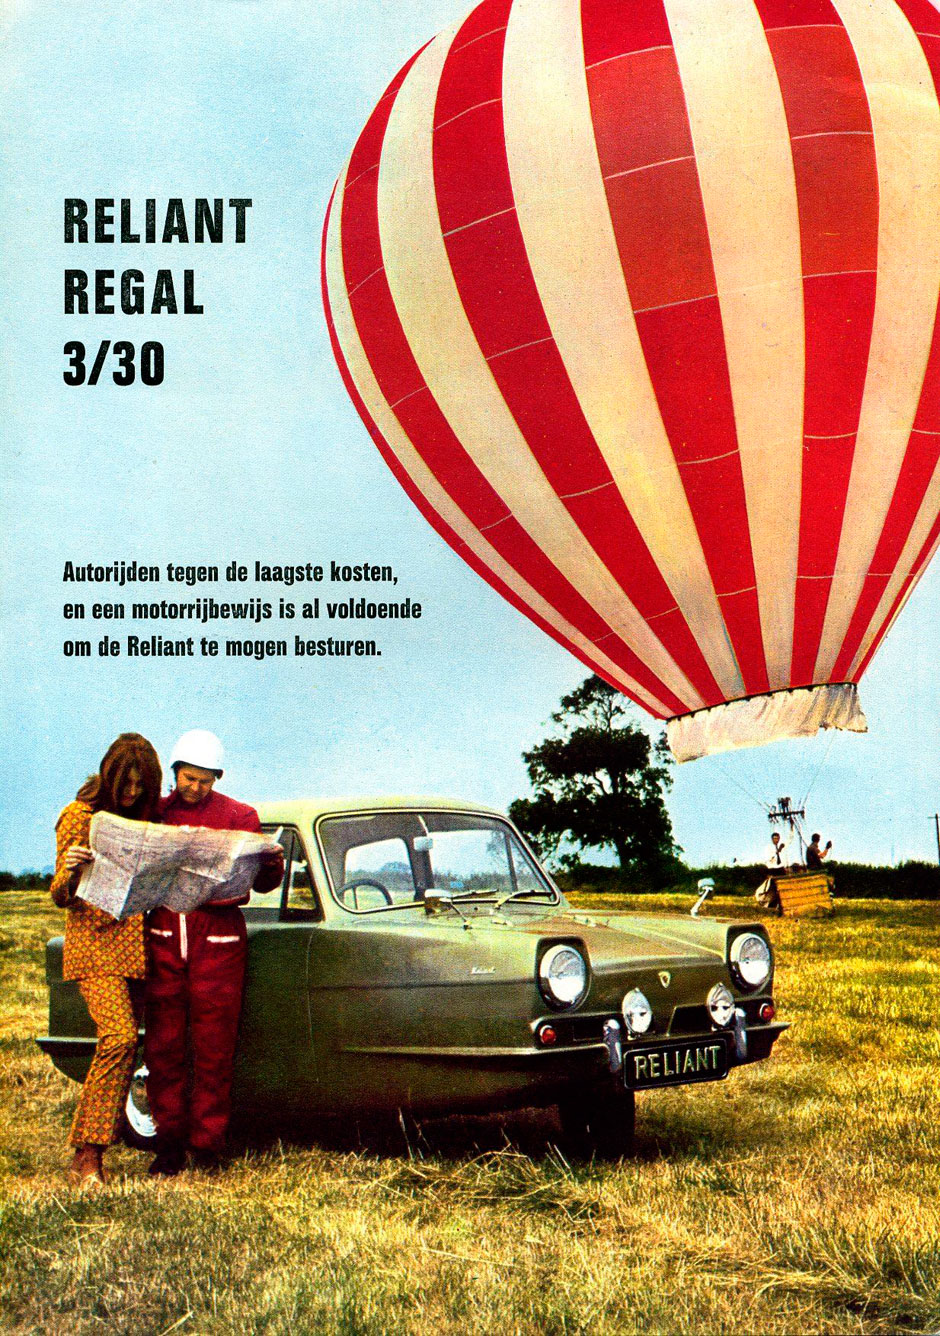 Reliant Regal 3/30